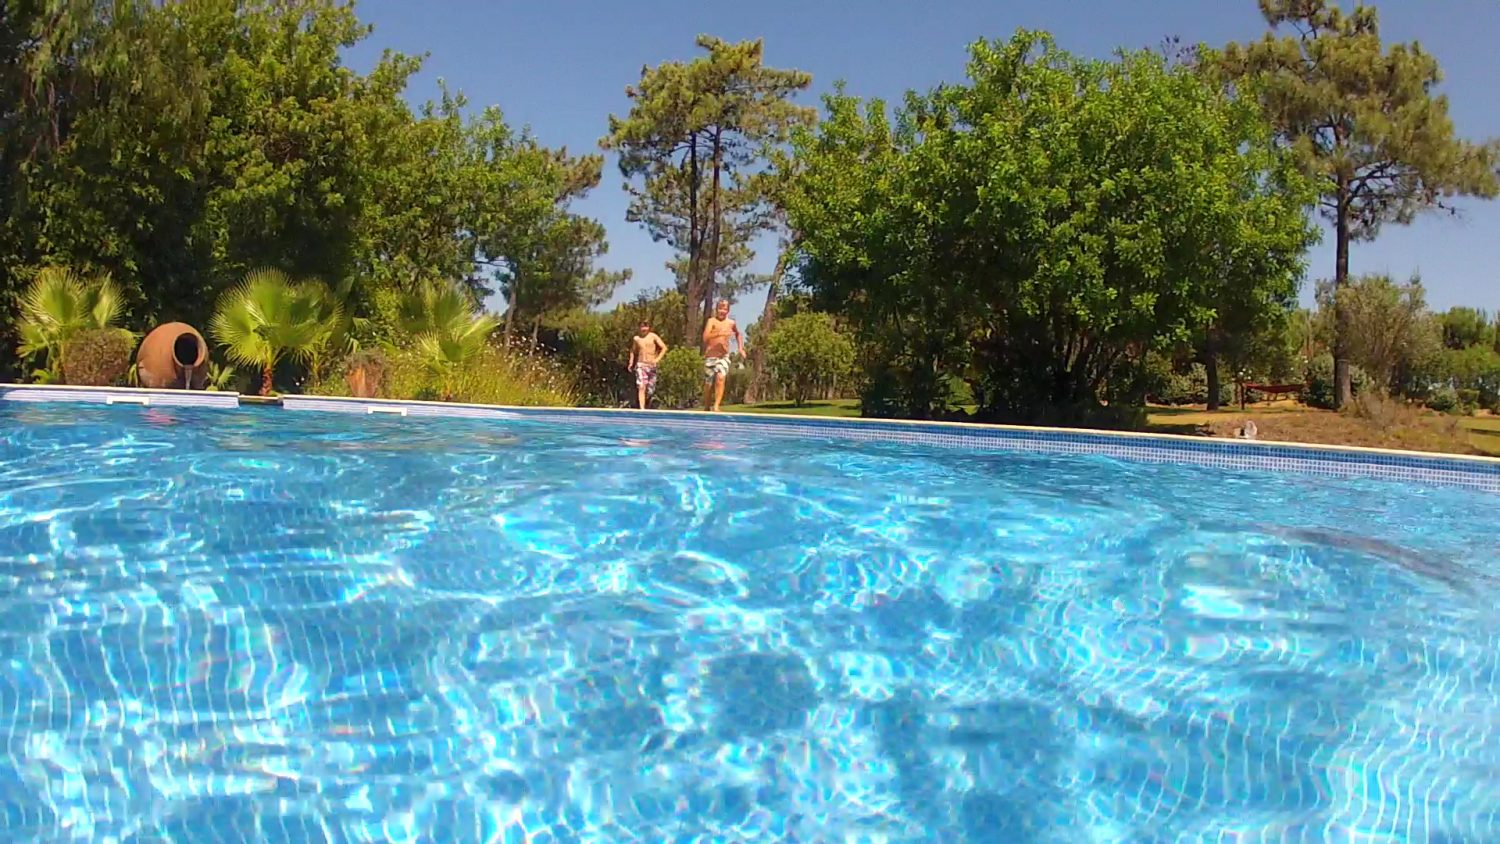 Why to Consider a Vinyl-Liner Pool